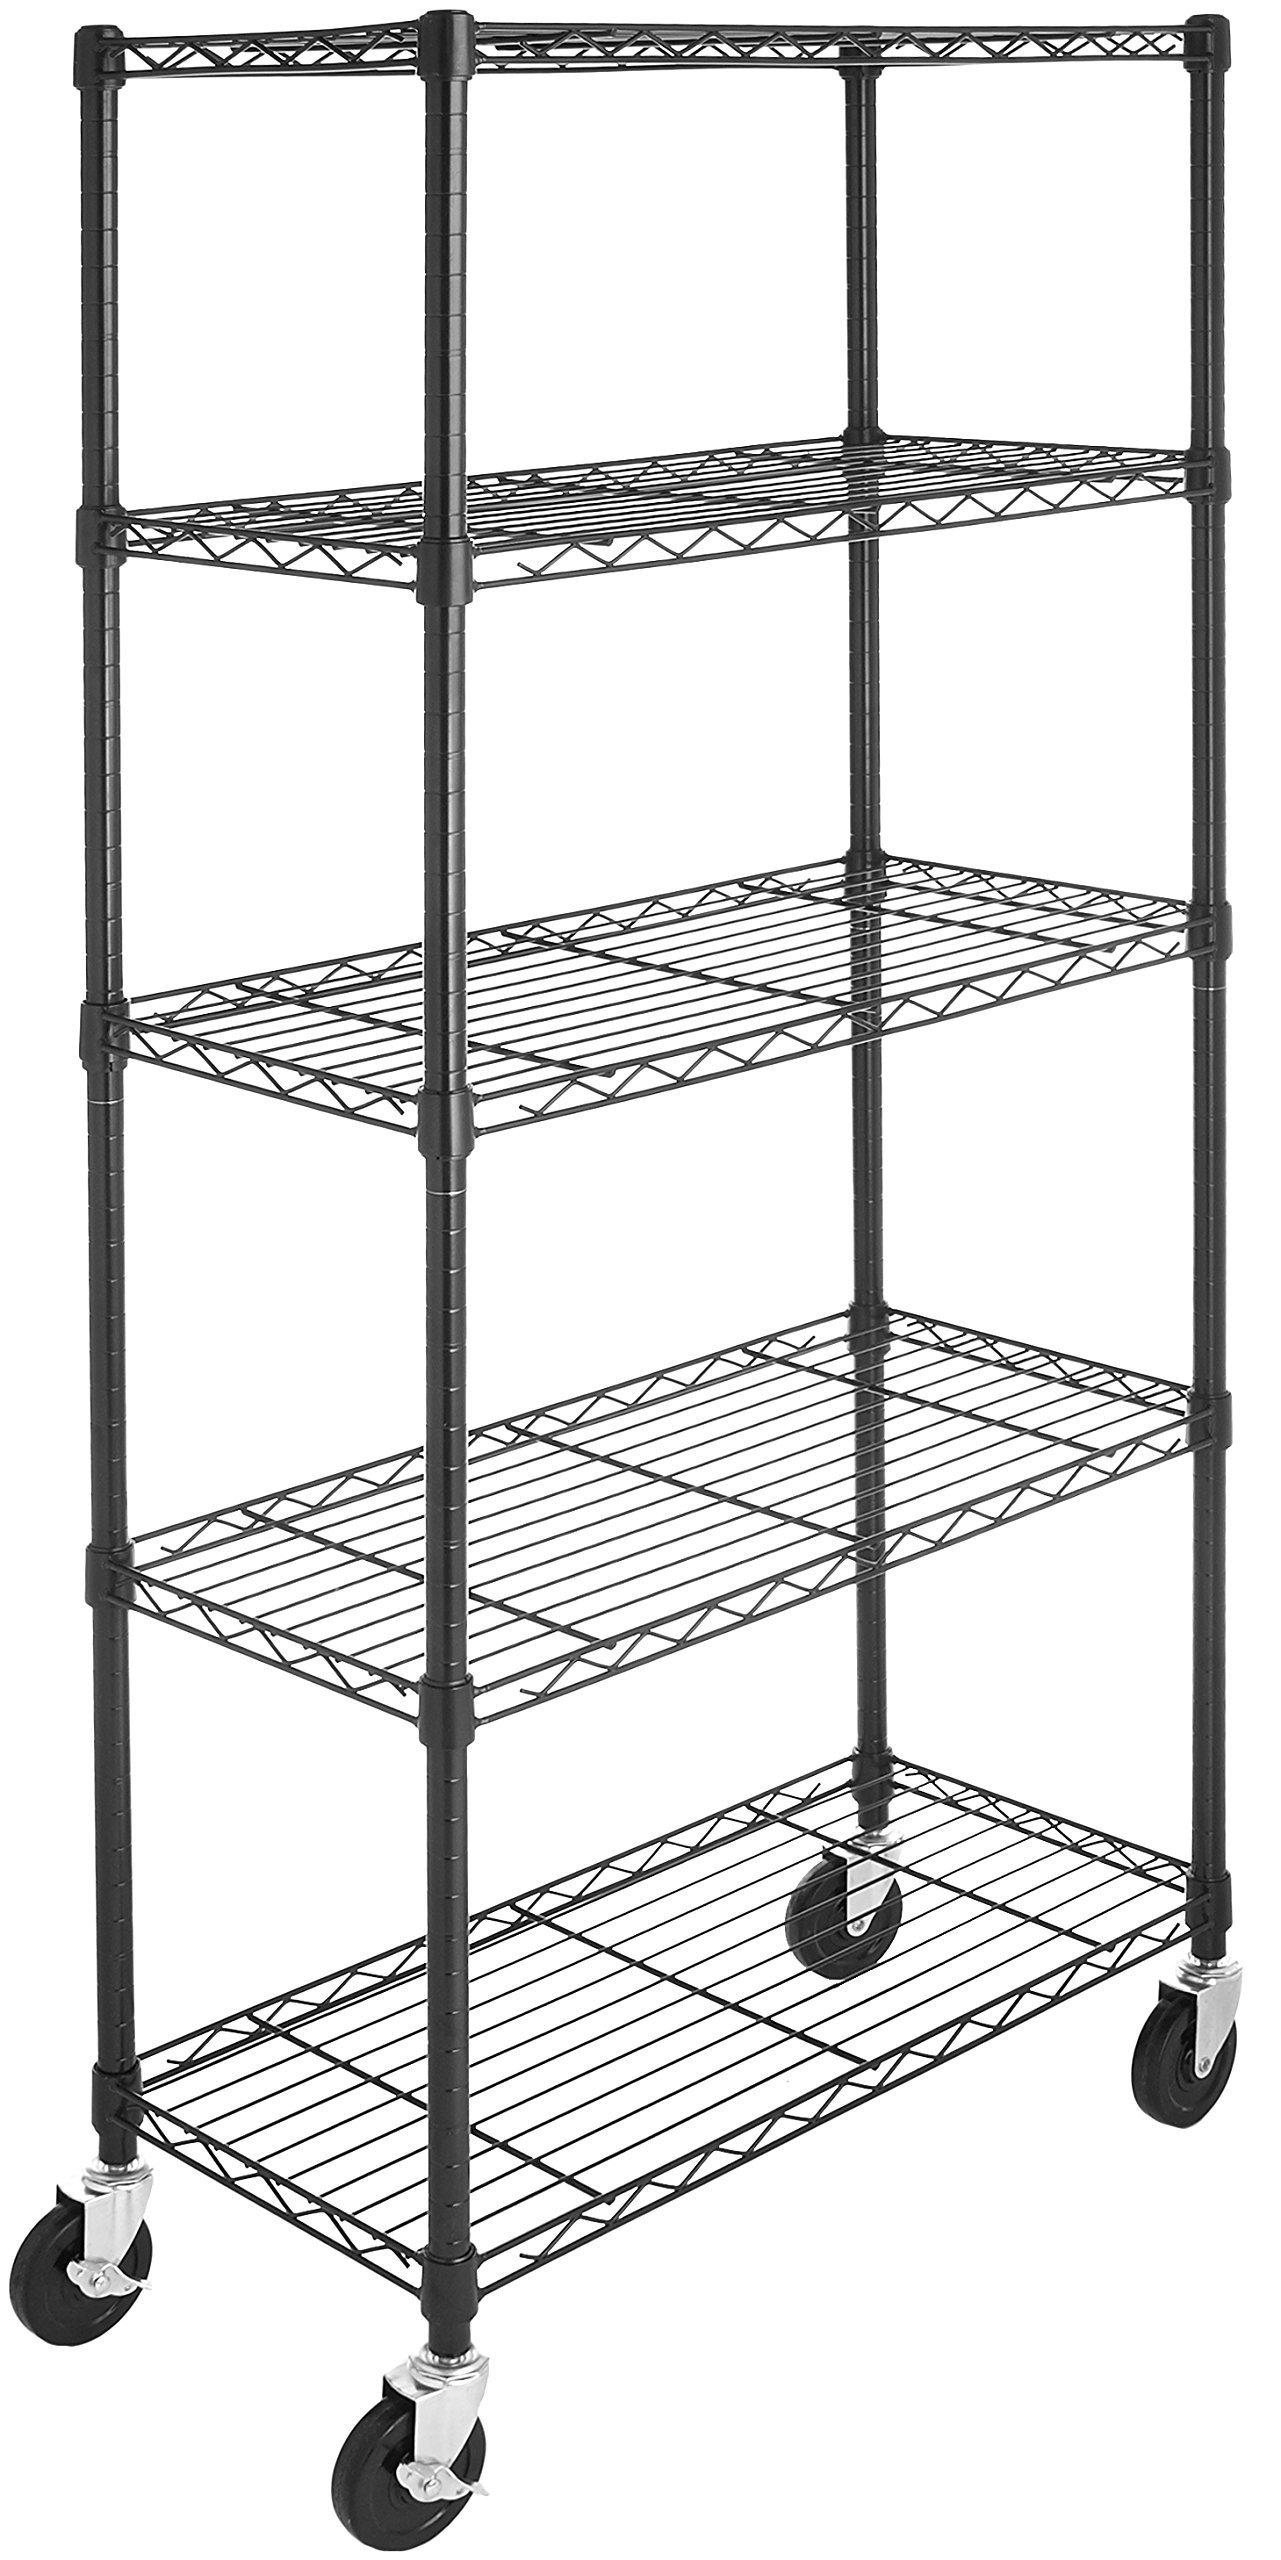 AmazonBasics 5-Shelf Shelving Storage Unit on 4'' Wheel Casters, Metal Organizer Wire Rack, Black by AmazonBasics